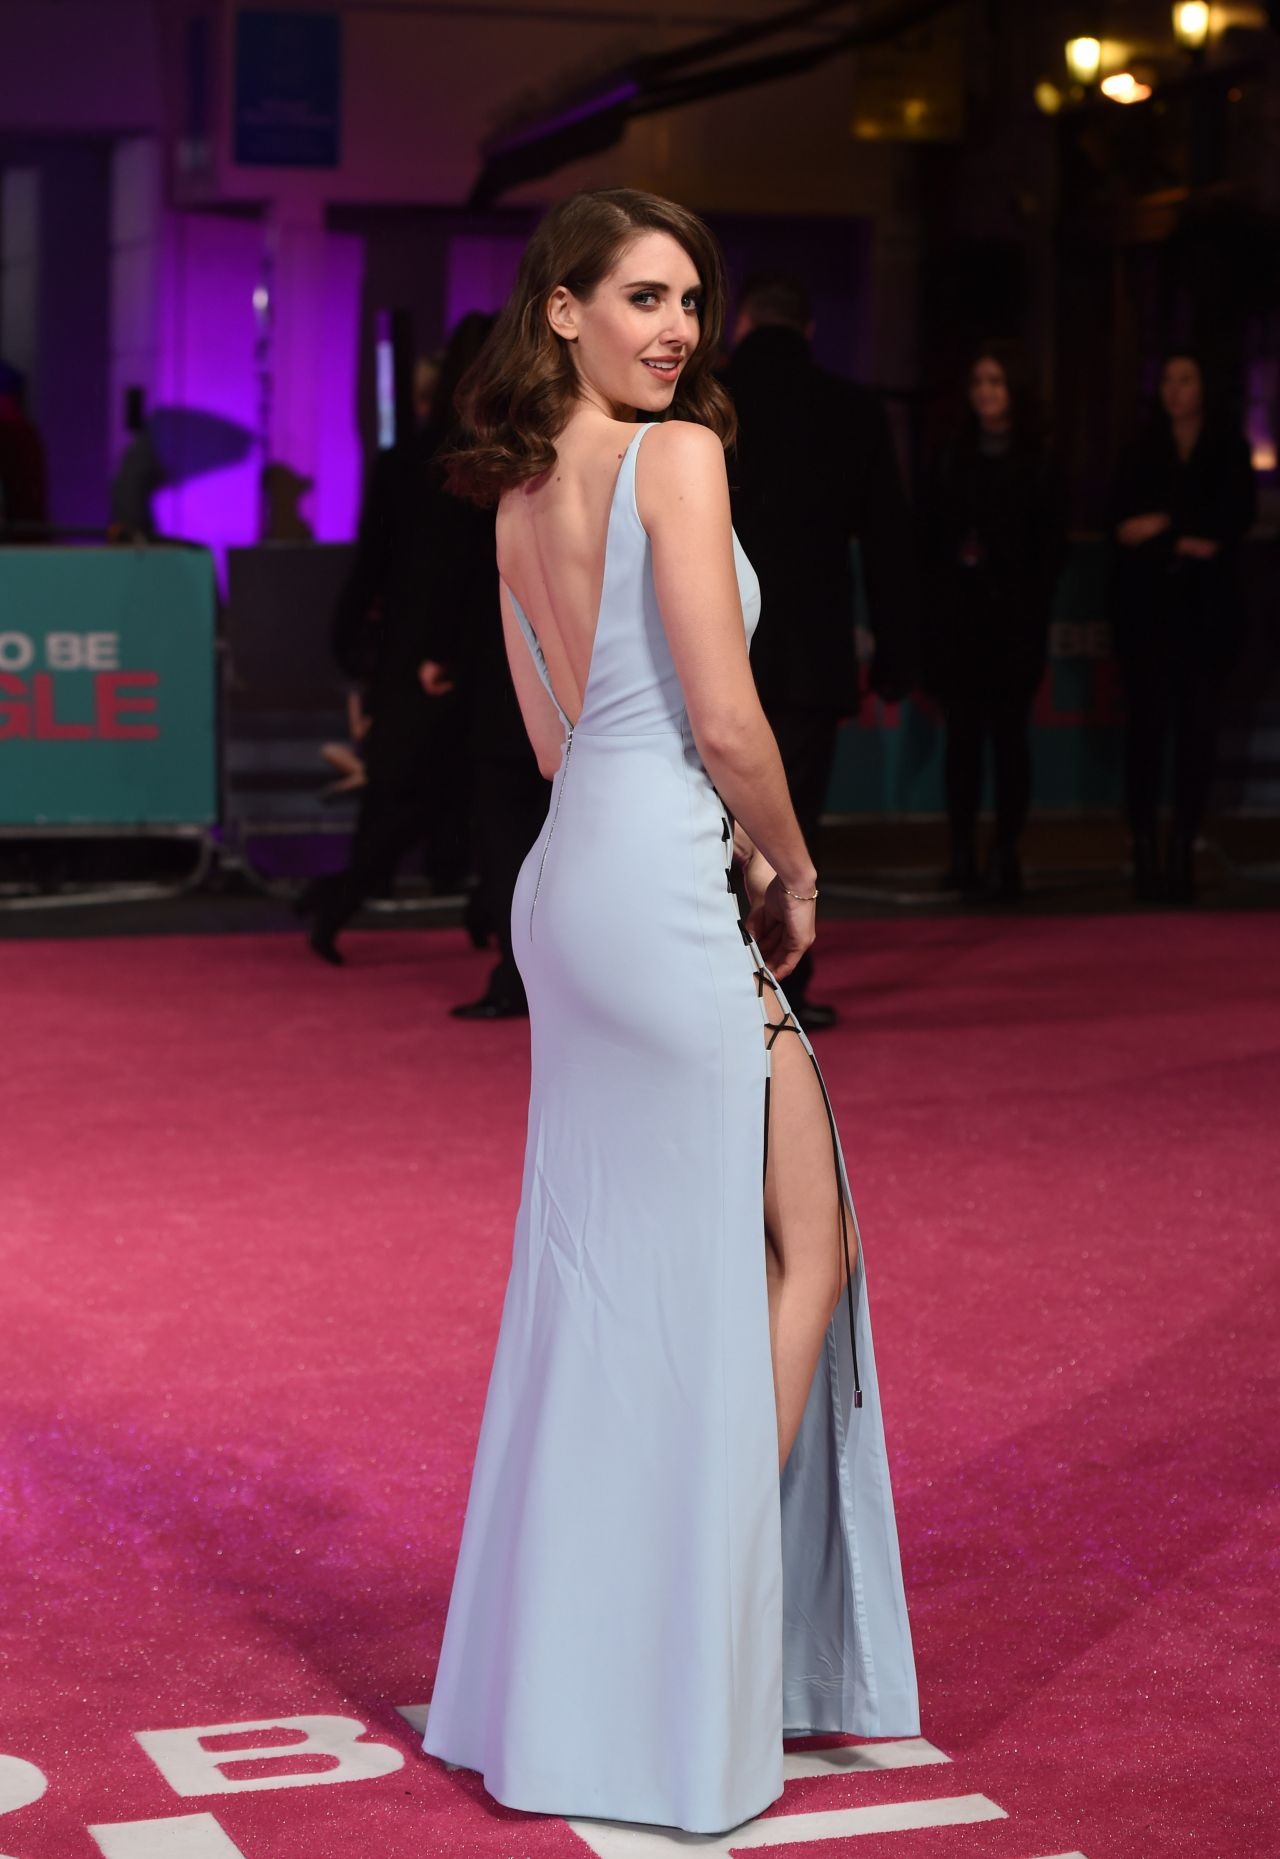 alison-brie-how-to-be-single-premiere-in-london-2